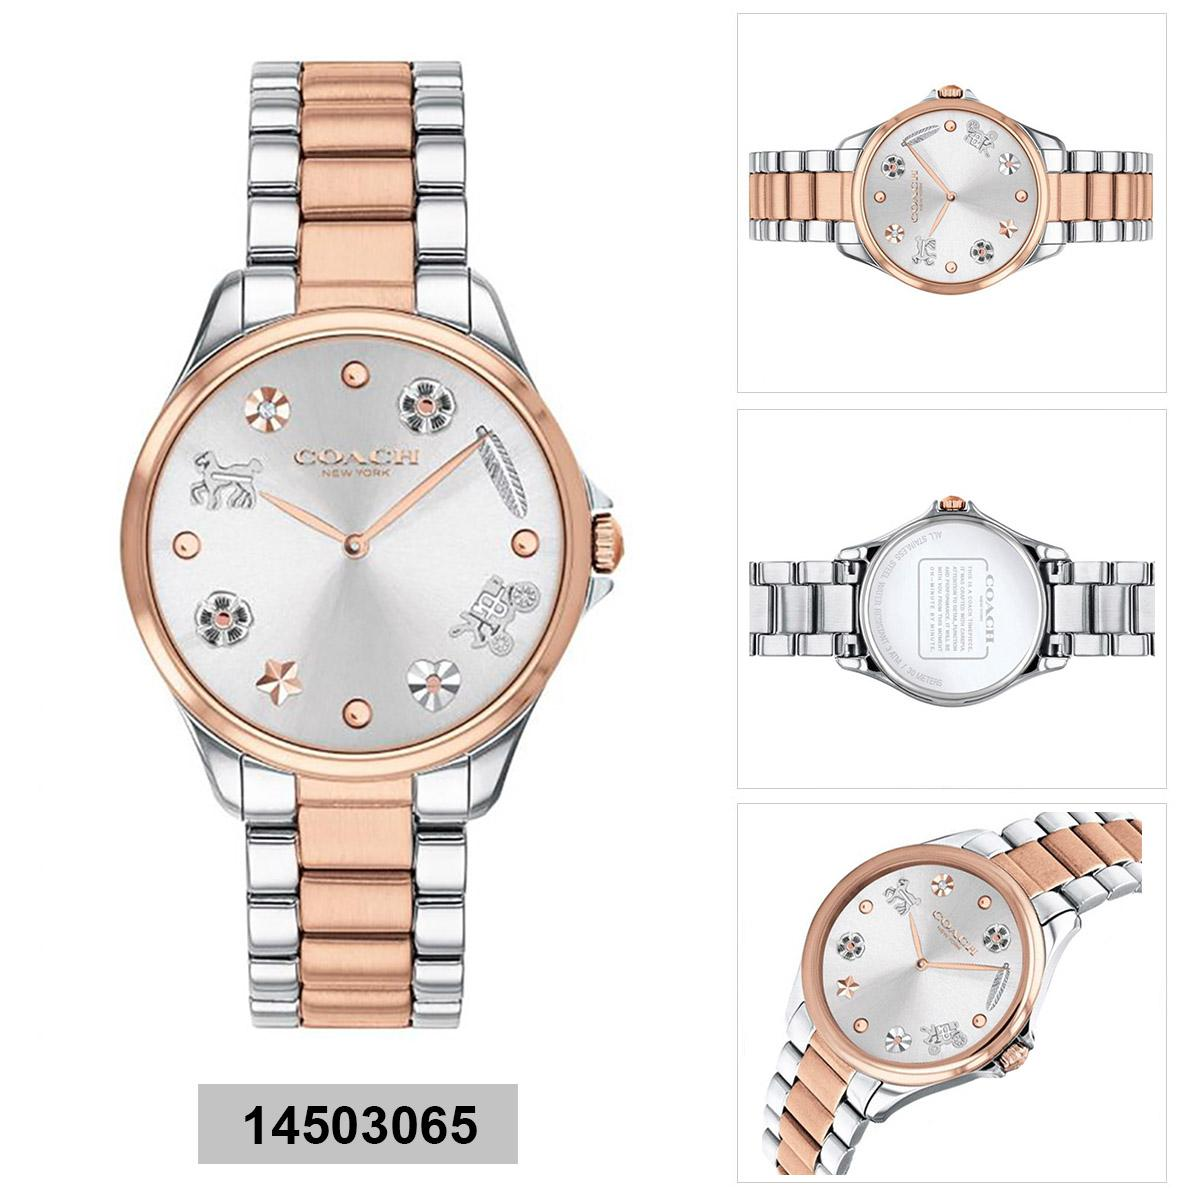 Coach Coach Astor Sunray Charm Multicolored Stainless-Steel Case Two-Tone-Stainless-Steel Bracelet Ladies 14503065 Malaysia